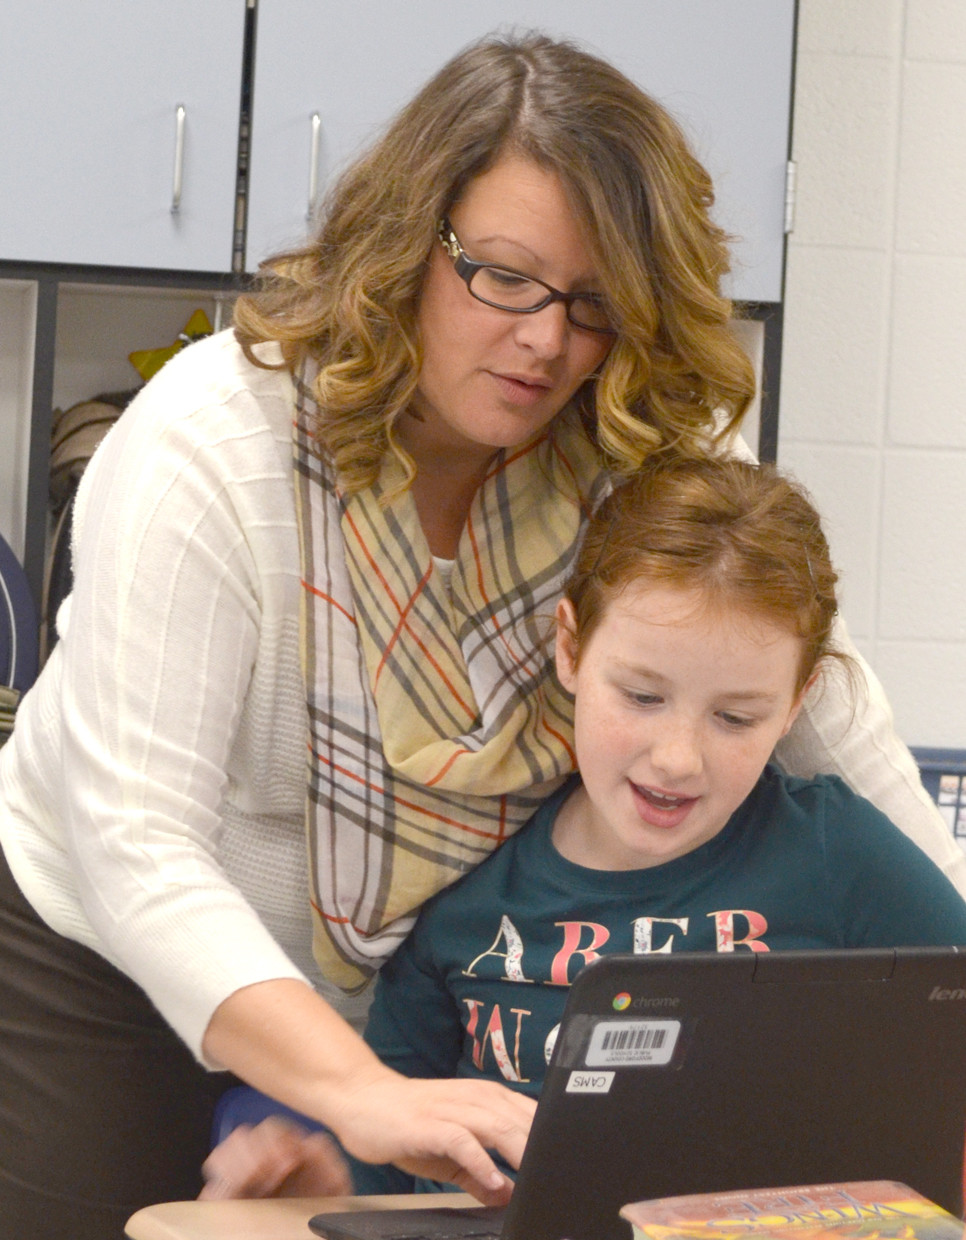 ANGELA BENTLEY, the Teacher of the Year at Huntertown Elementary School, offered some guidance to Cassidy Stiefel. The fourth-grader was using a computer tablet on a writing project. (Photo by Bob Vlach)